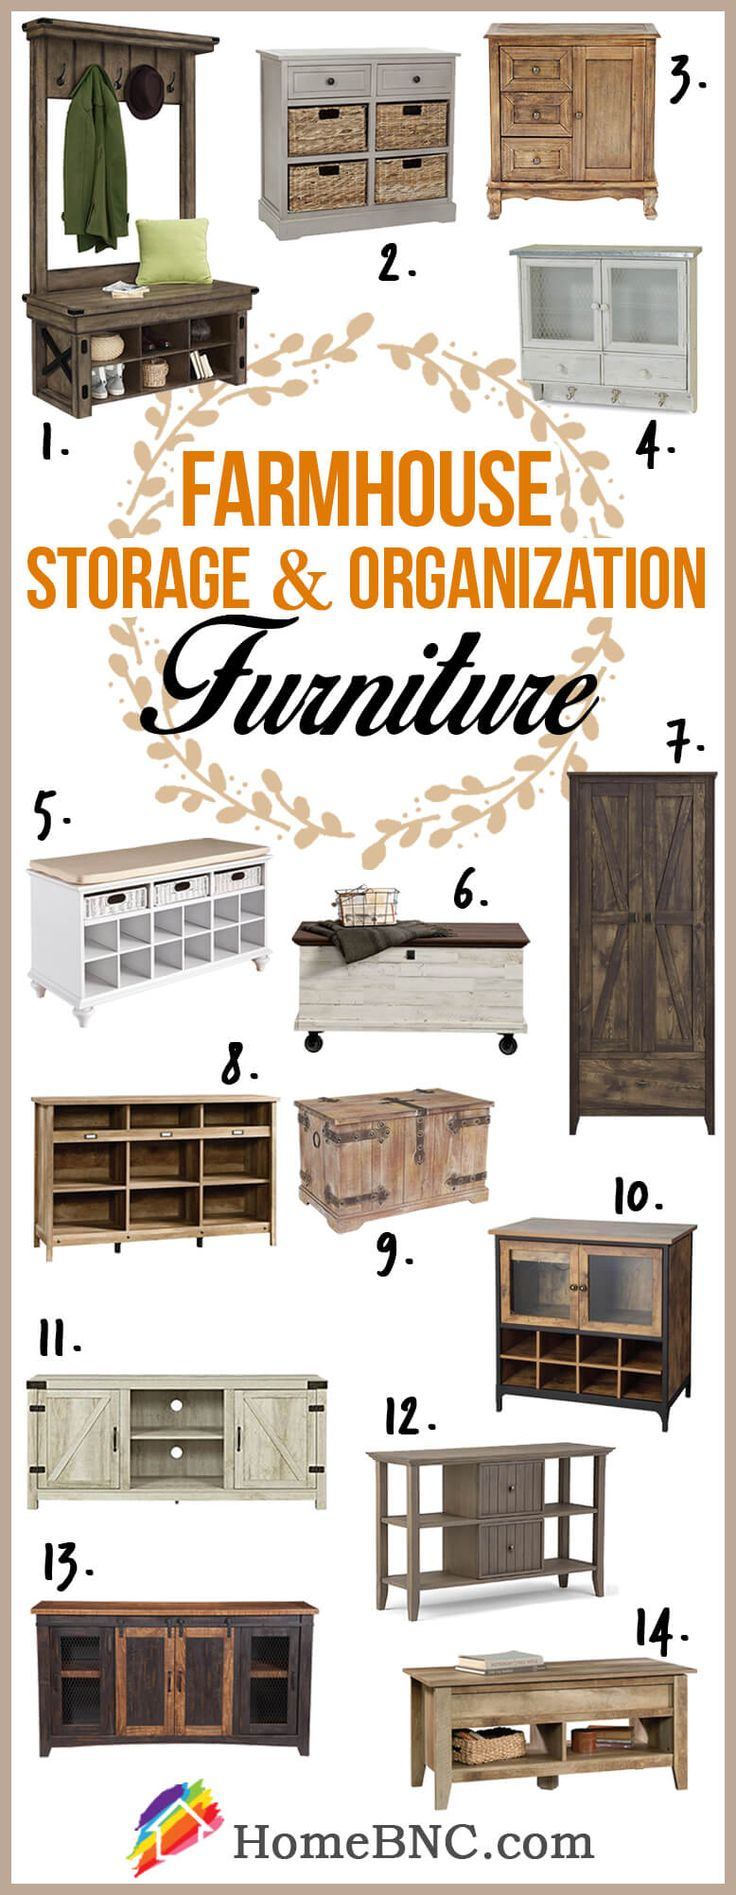 Farmhouse furniture